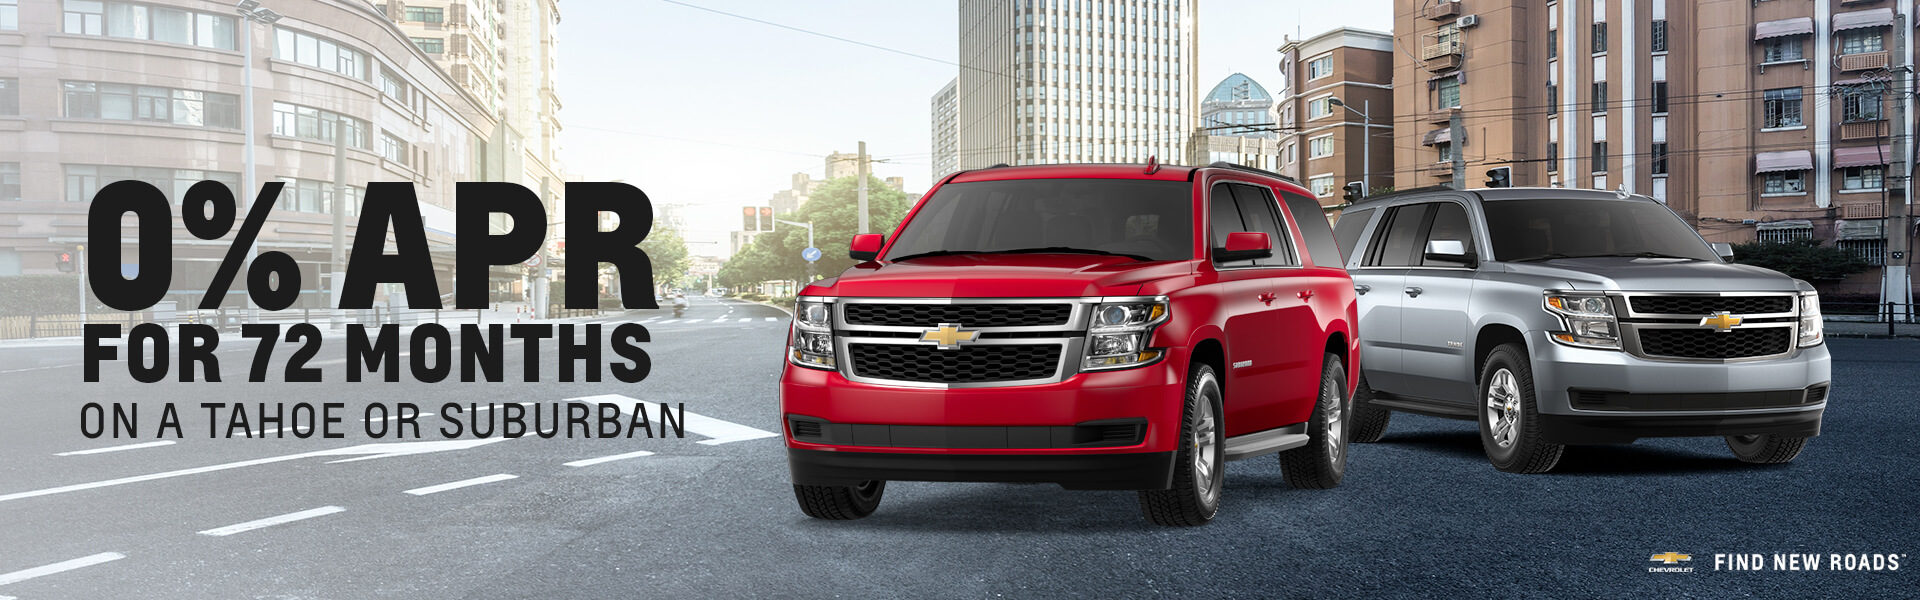 72% APR on Tahoe or Suburban